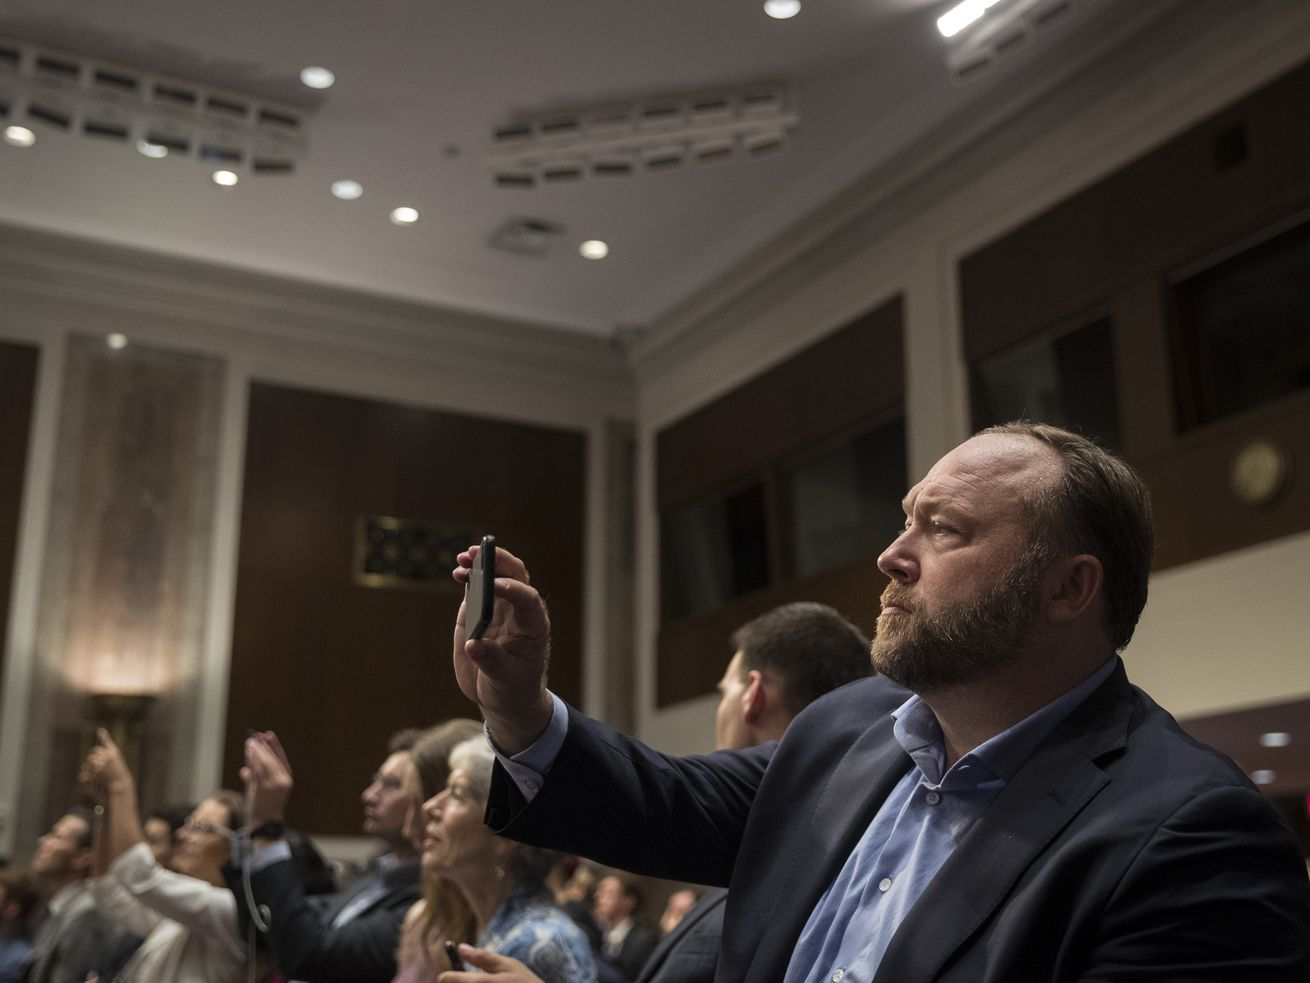 Alex Jones of Infowars at a Senate Intelligence Committee hearing concerning foreign influence operations' use of social media platforms, on Capitol Hill, September 5, 2018, in Washington, DC.